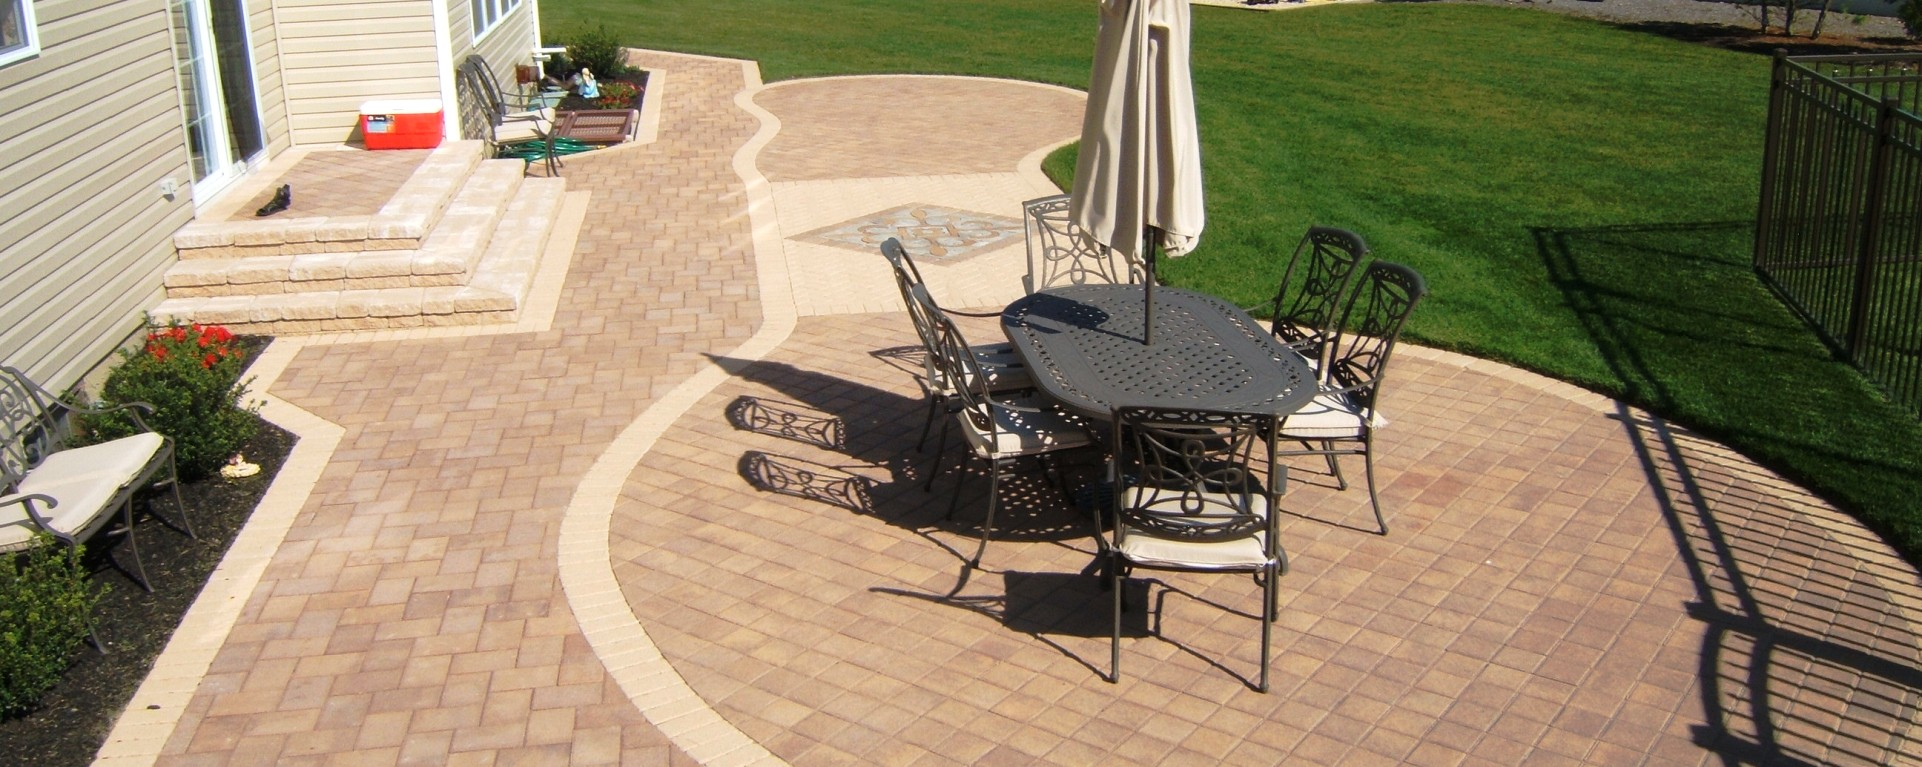 Cambridge Pavingstones  Pool Copings  Supplier Installer Long Island NY  Deck and Patio